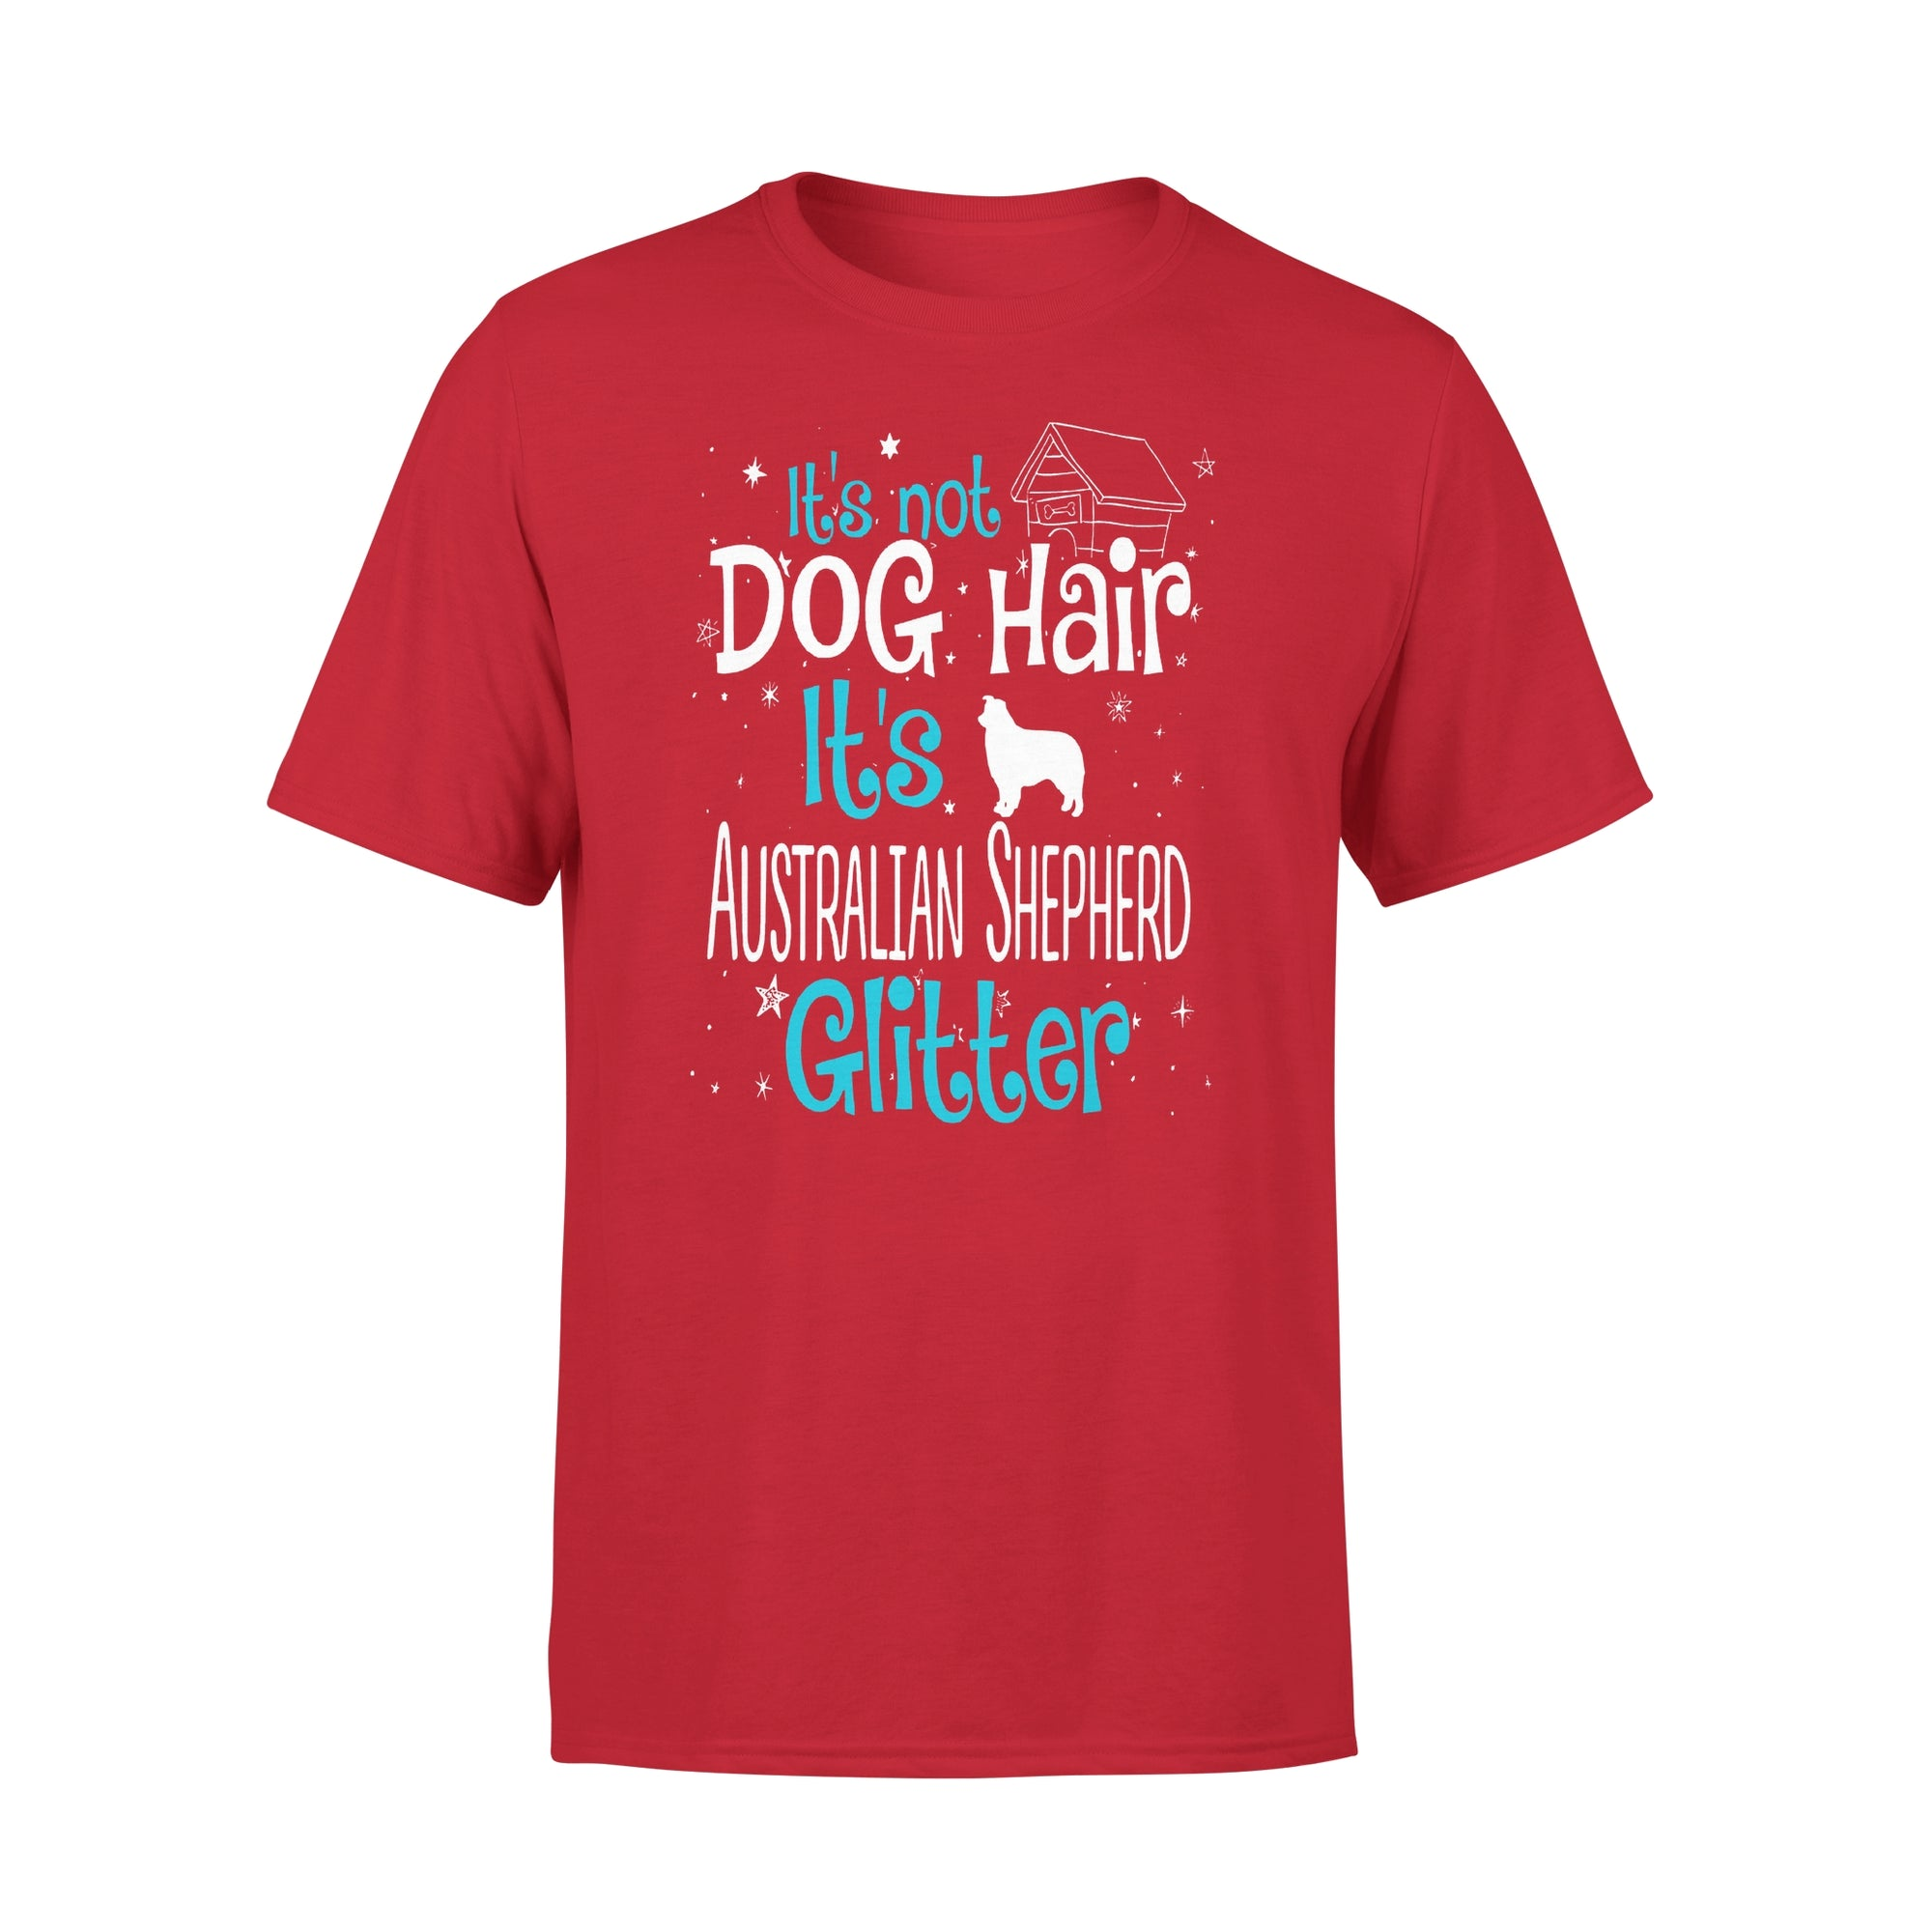 VIRA Premium Tee For Australian Shepherd Lovers